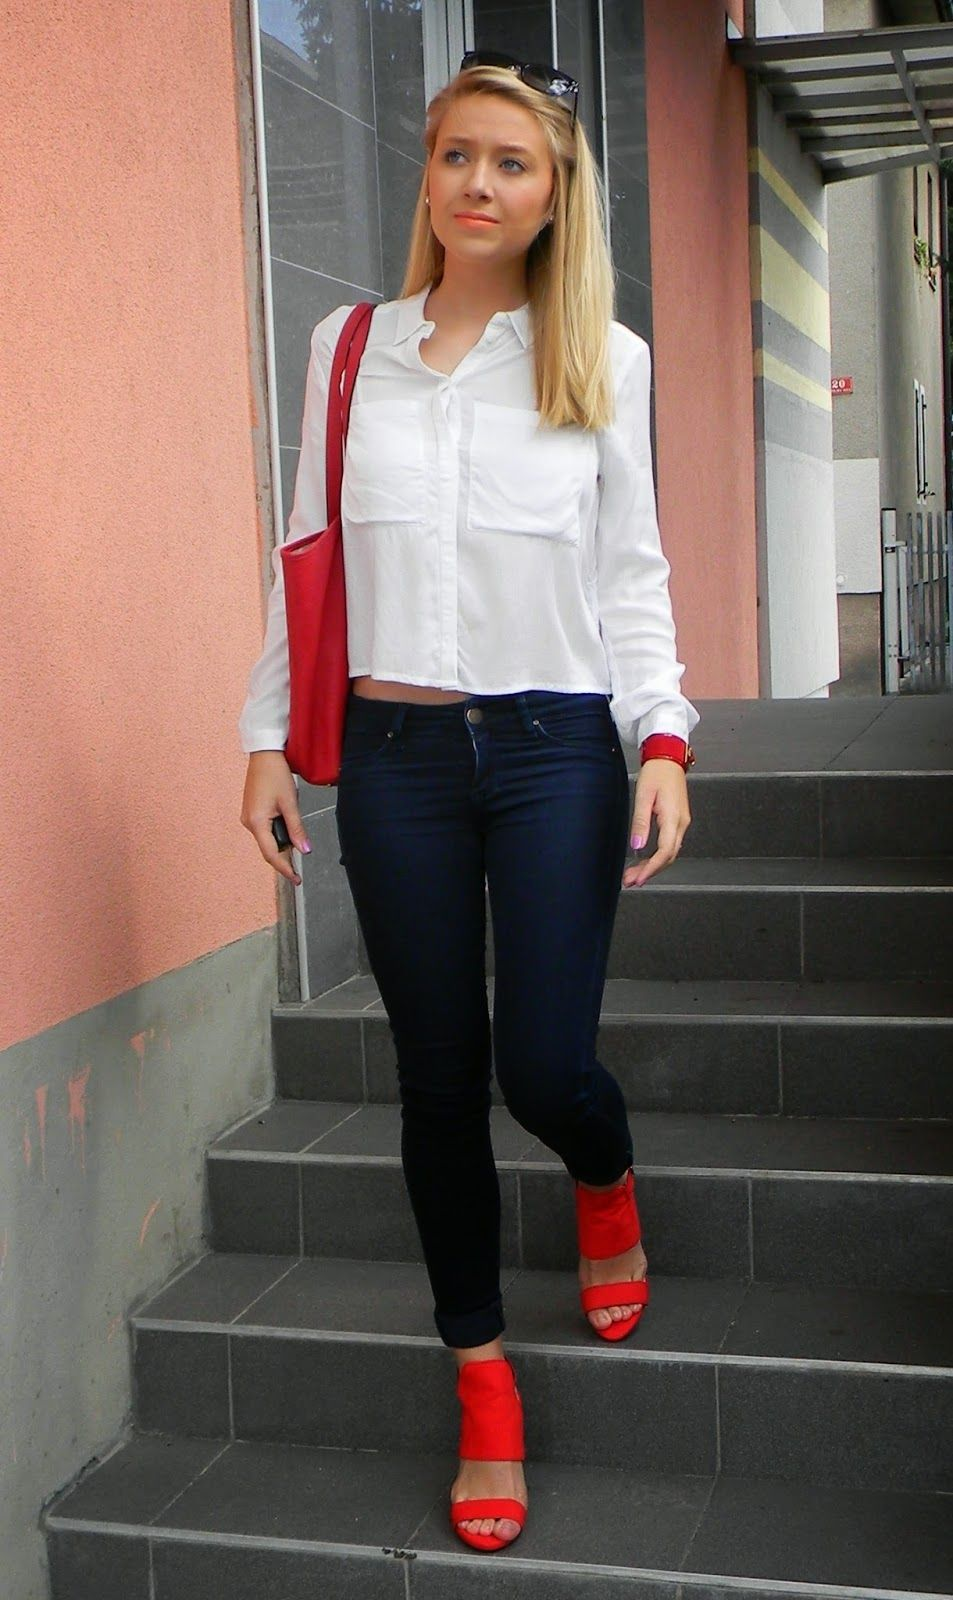 Women's White Dress Shirt, Navy Skinny Jeans, Red Suede Heeled ...